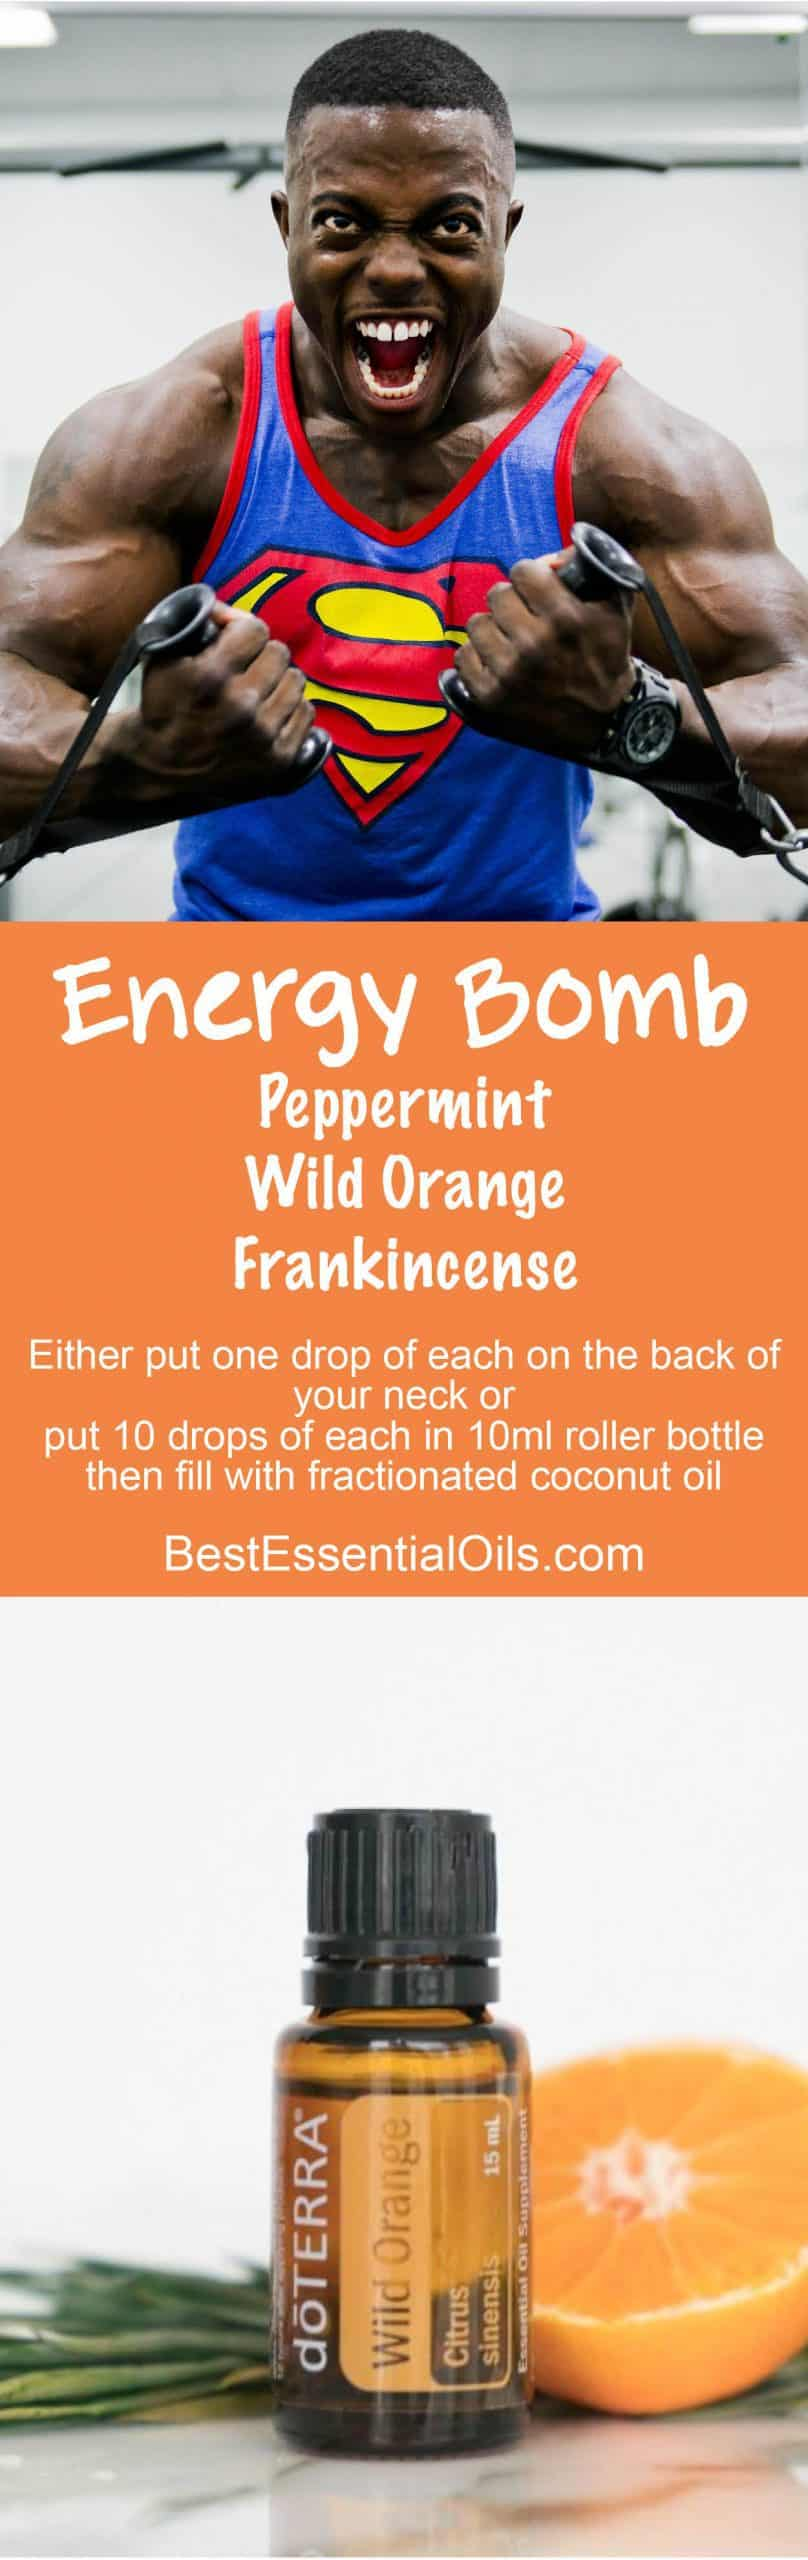 doTERRA Energy Bomb Recipe